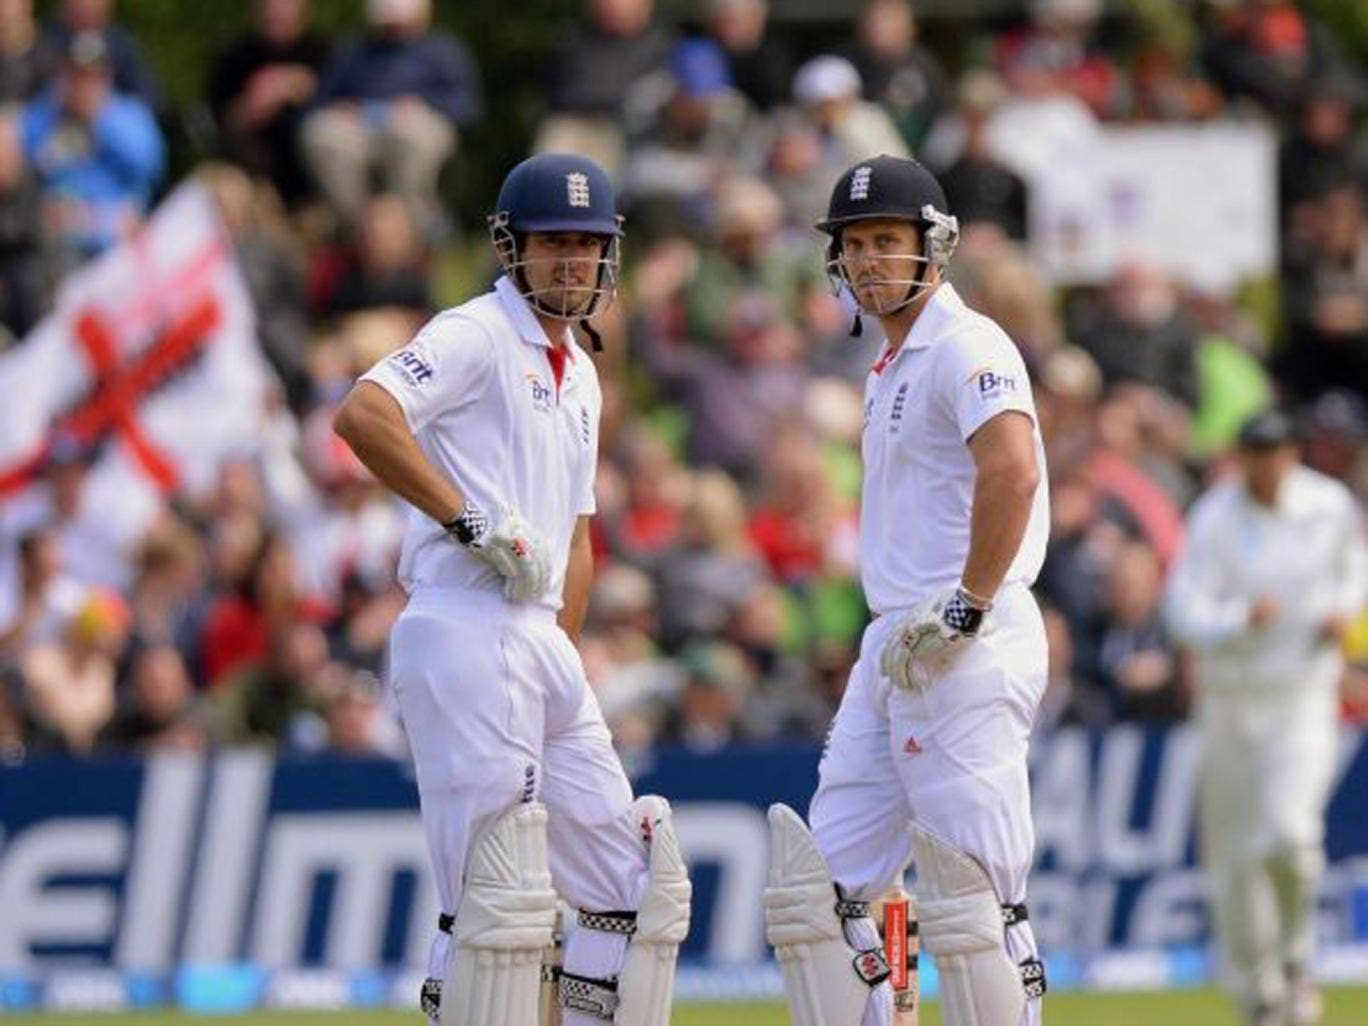 Alastair Cook (left) and Nick Compton average 75.5 as a pair when opening the batting for England